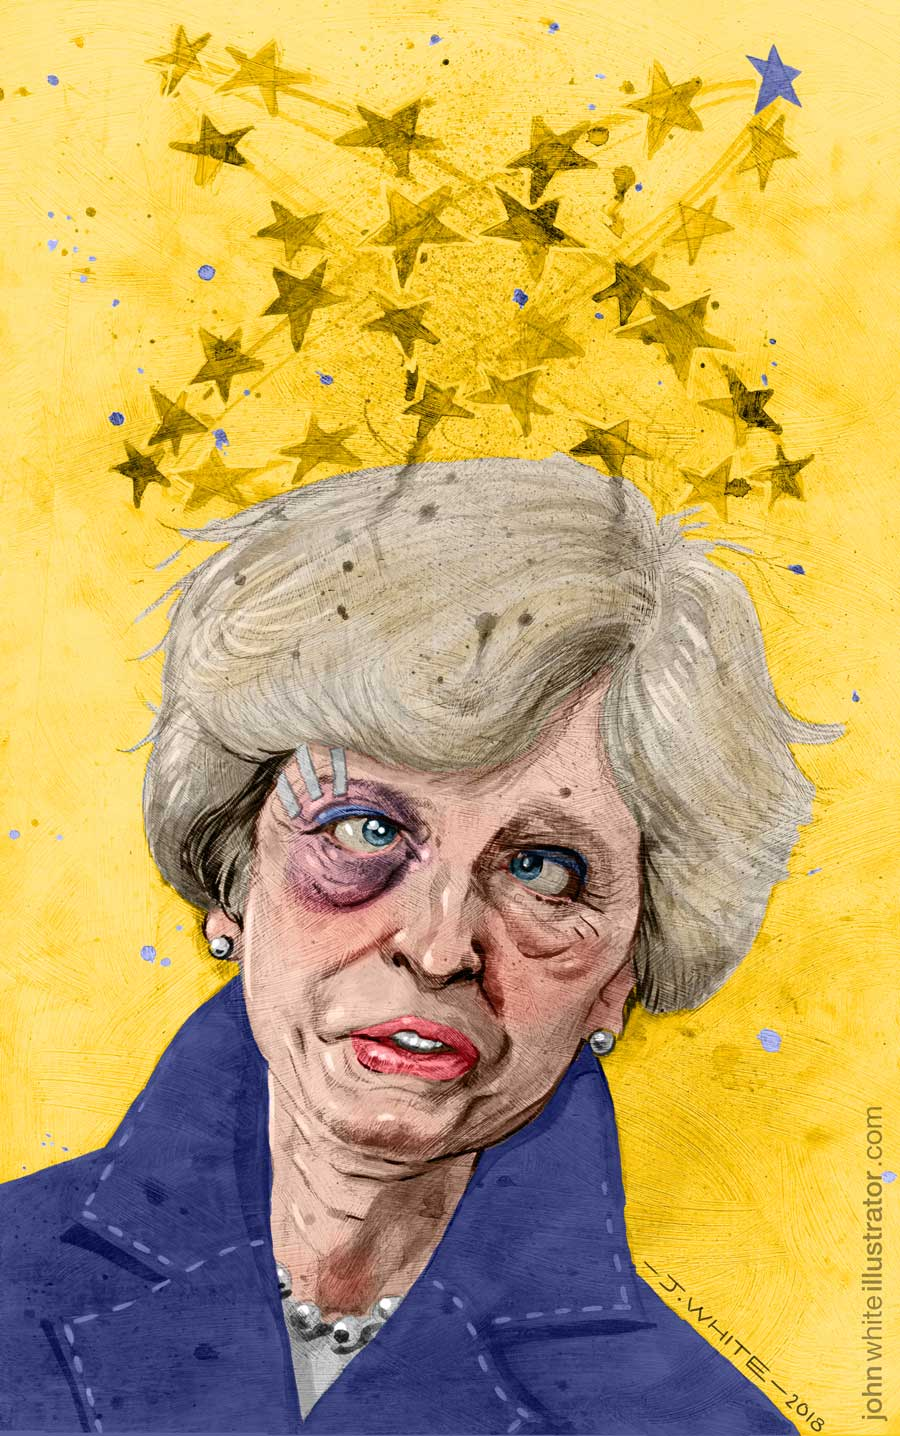 colour editorial illustration of theresa may and brexit negotiations